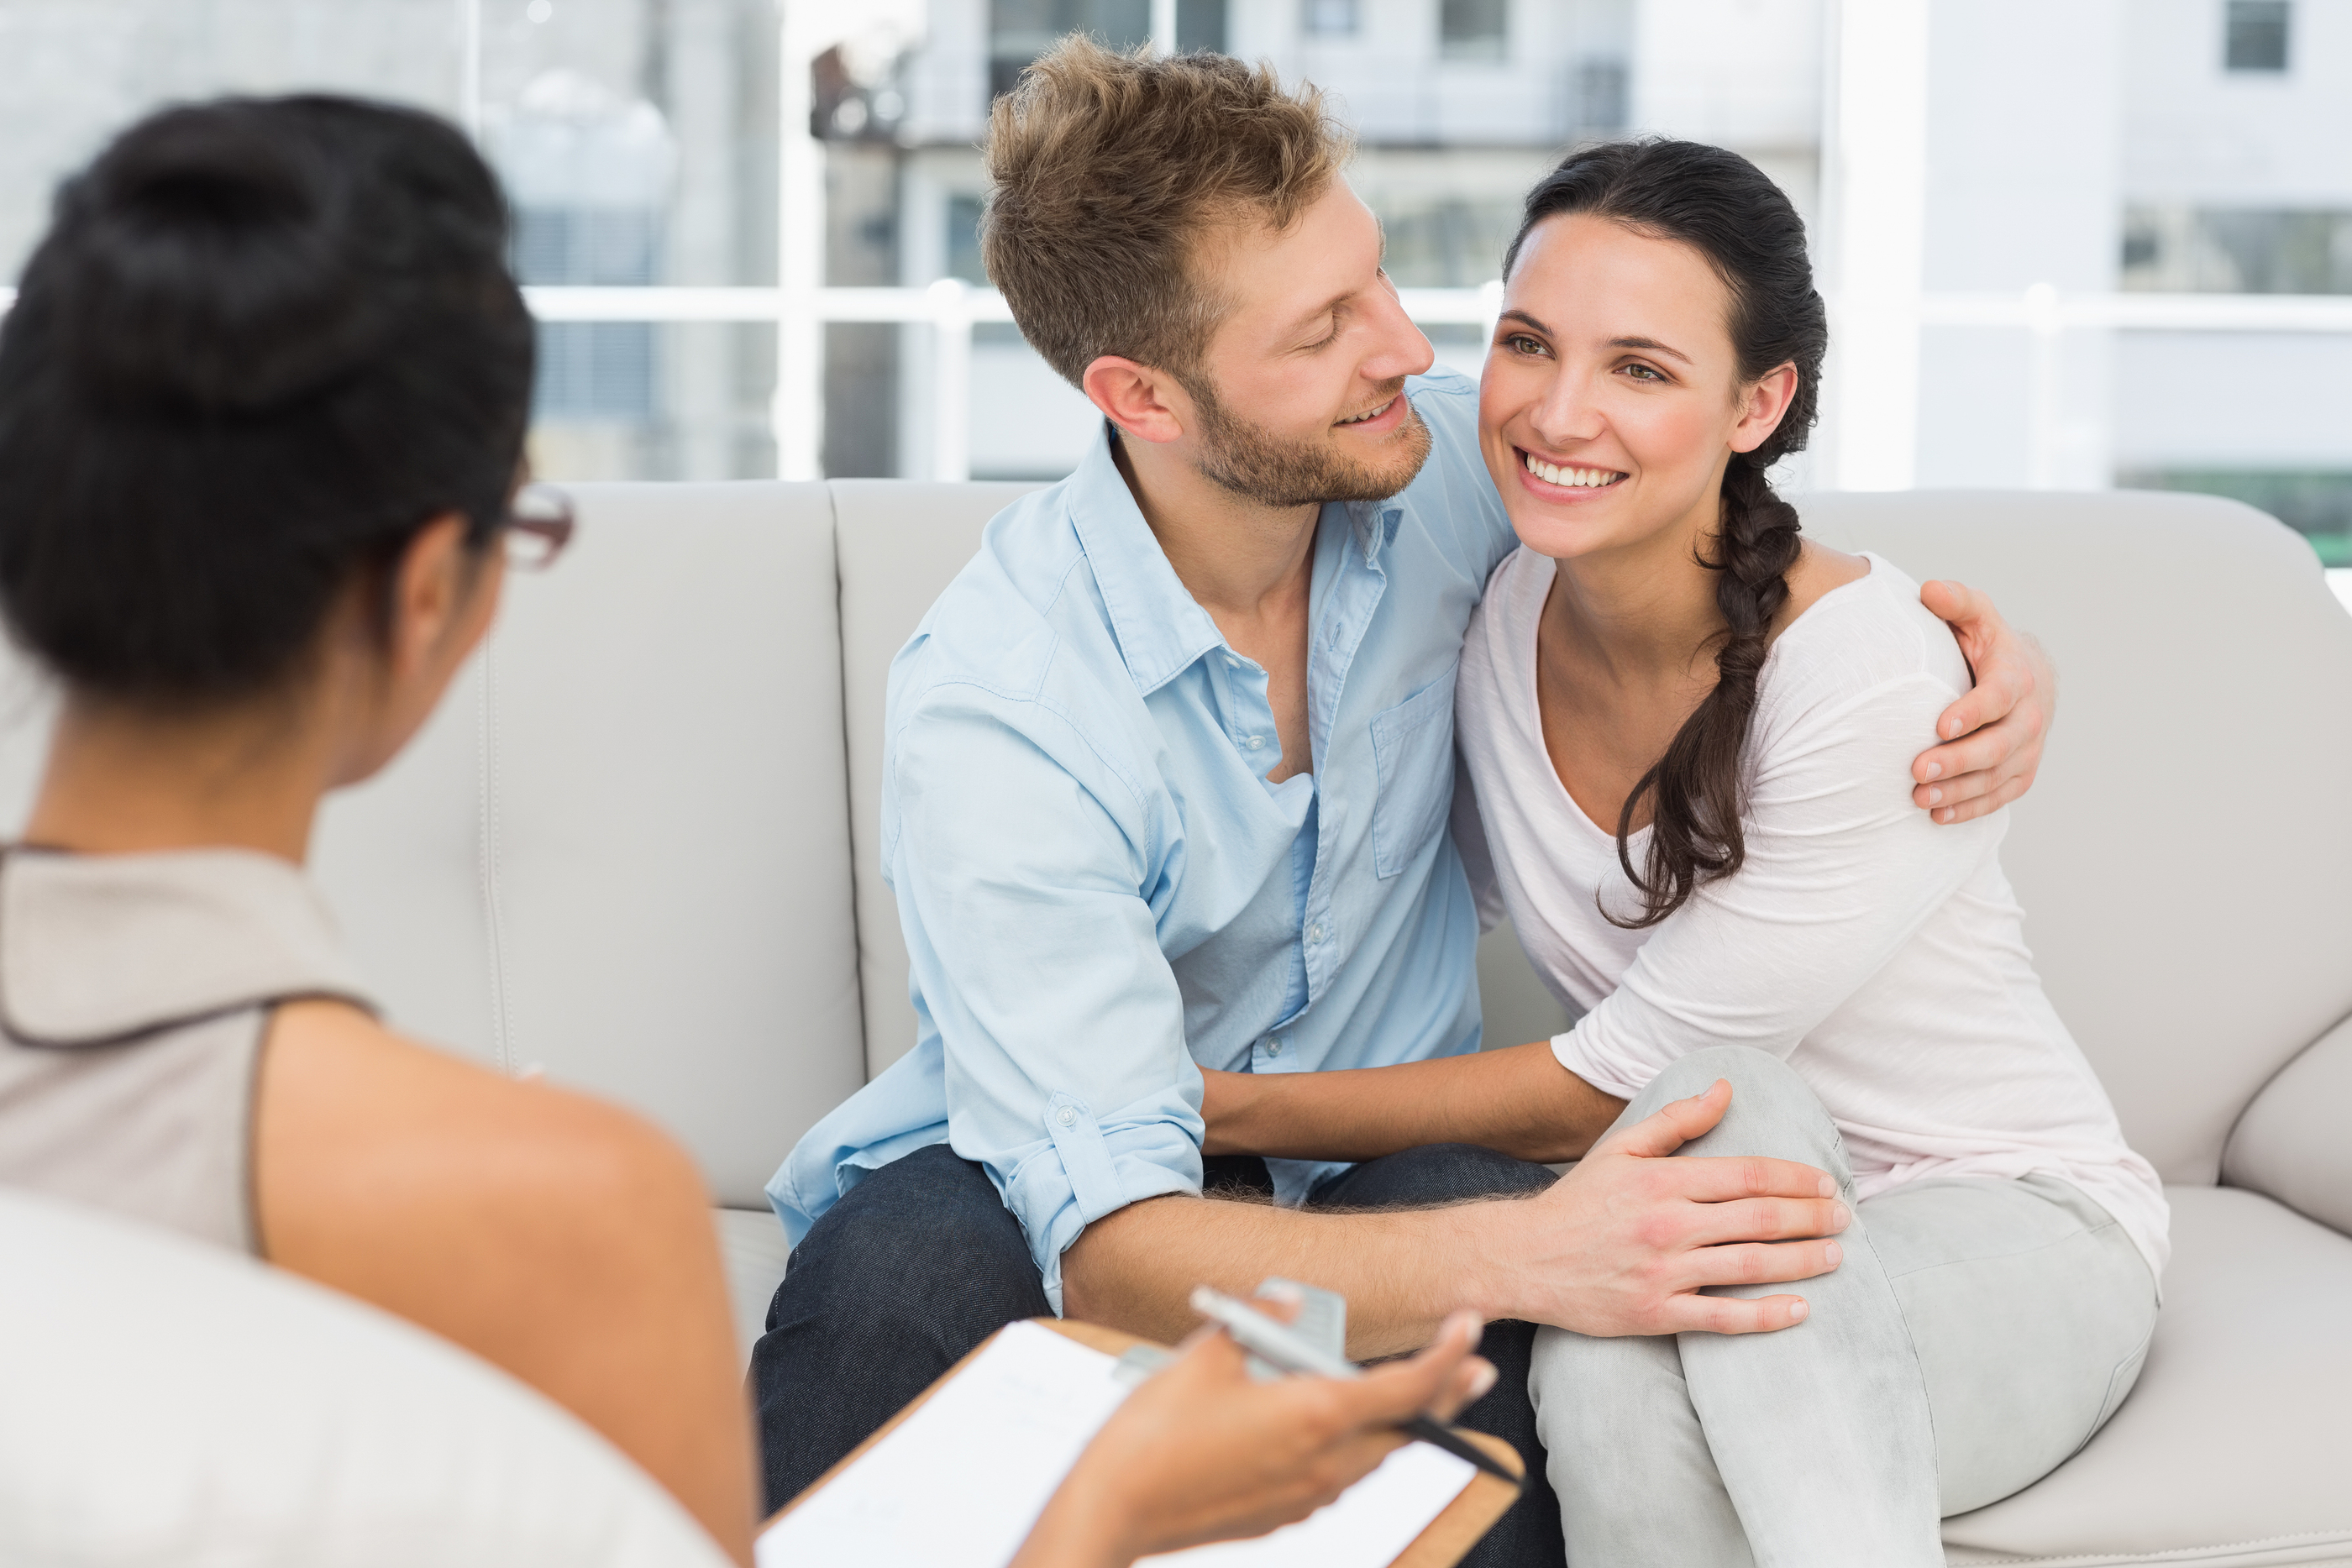 Counsel Me Vancouvercouples Therapy And Marriage Counselling